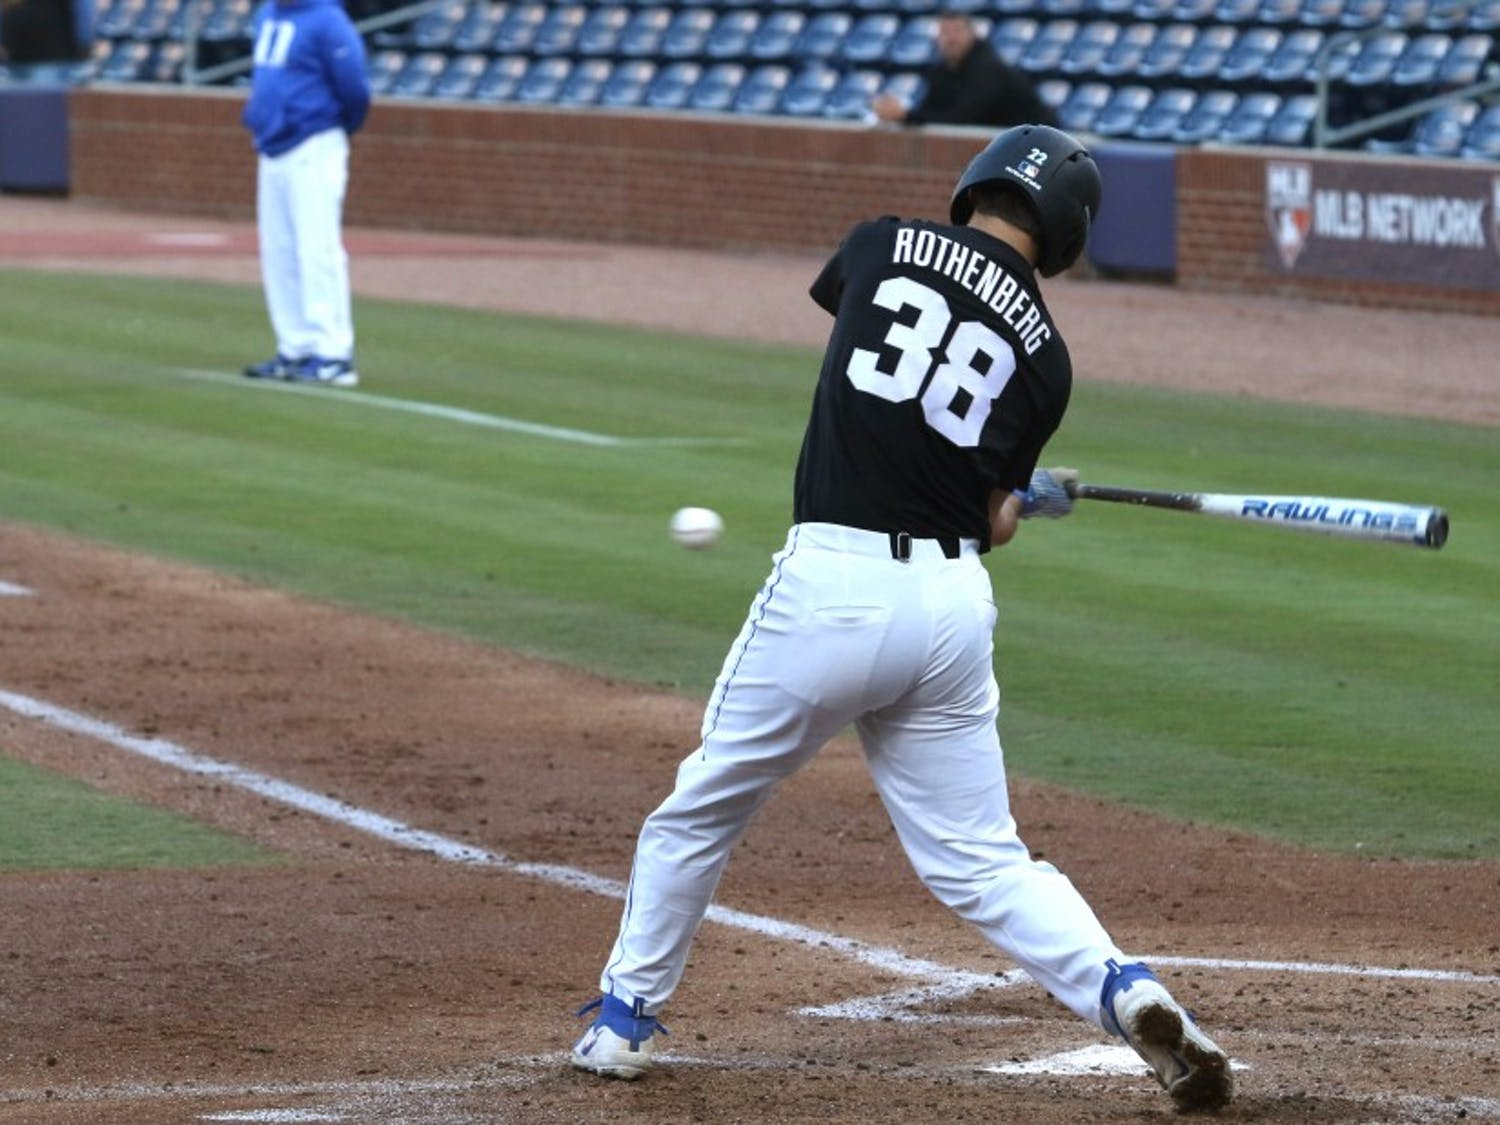 Michael Rothenberg cracked another home run Tuesday.